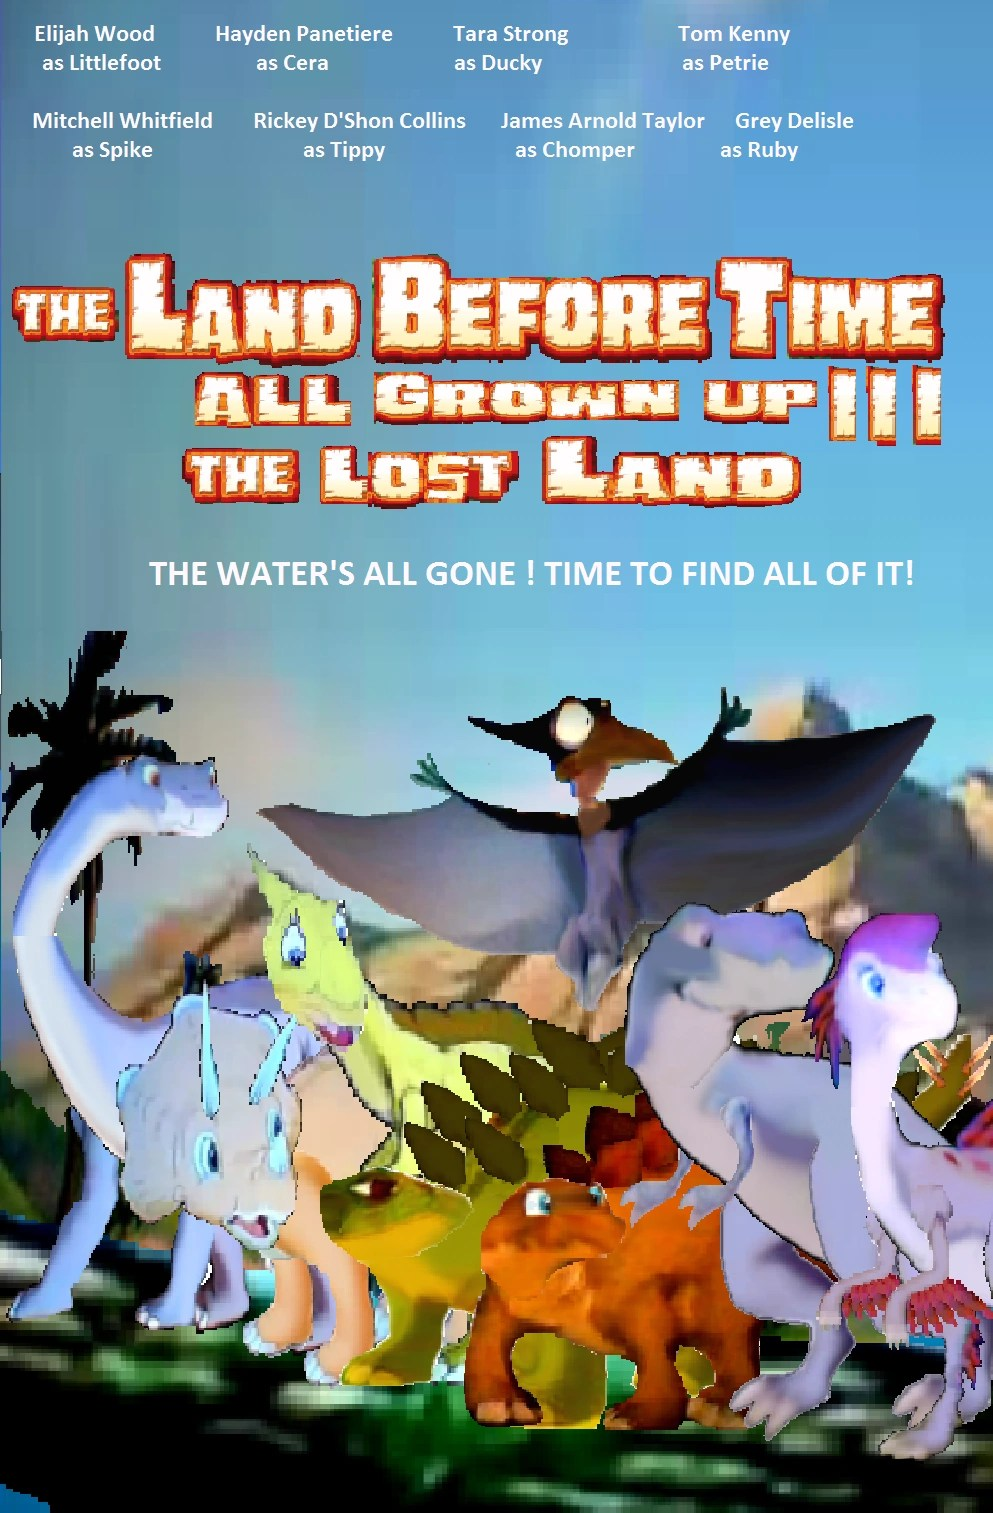 20+ Meet Land Before Time Ruby Pictures and Ideas on Weric